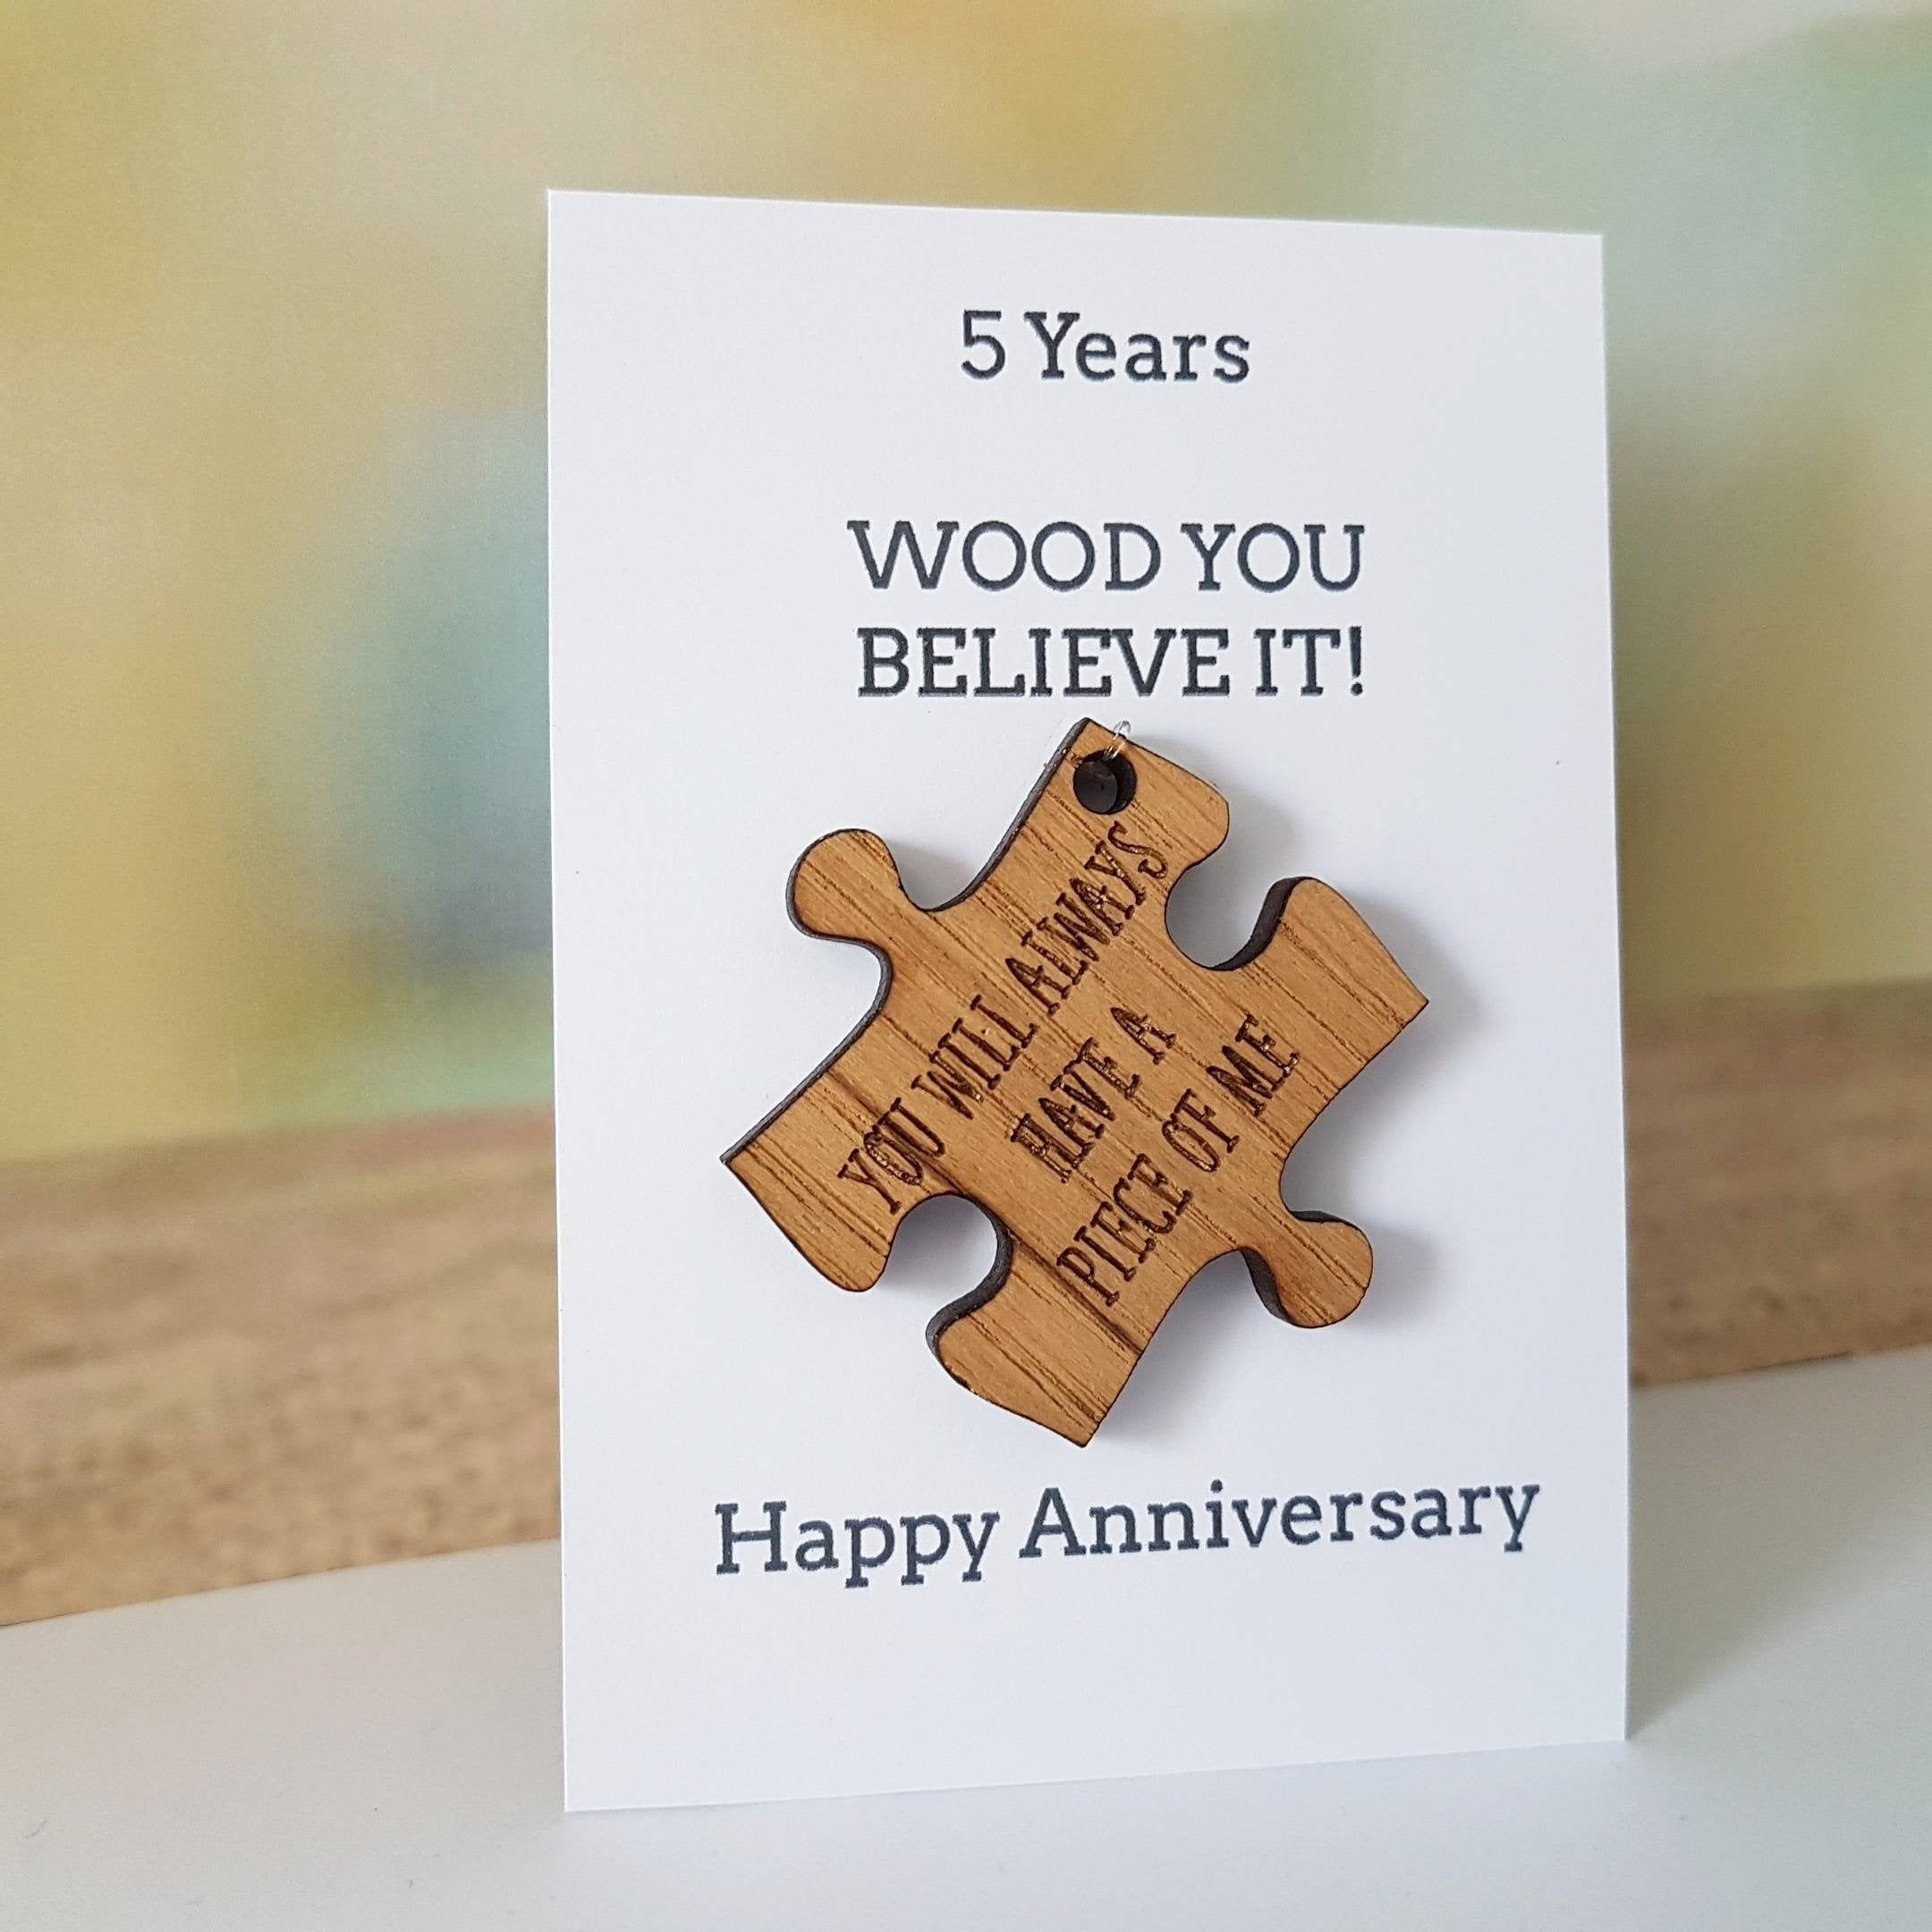 5th Anniversary Gift Husbandgift Wife Card Wood Wooden Etsy In 2020 Wooden Anniversary Gift Wood Anniversary Gift Wedding Anniversary Cards